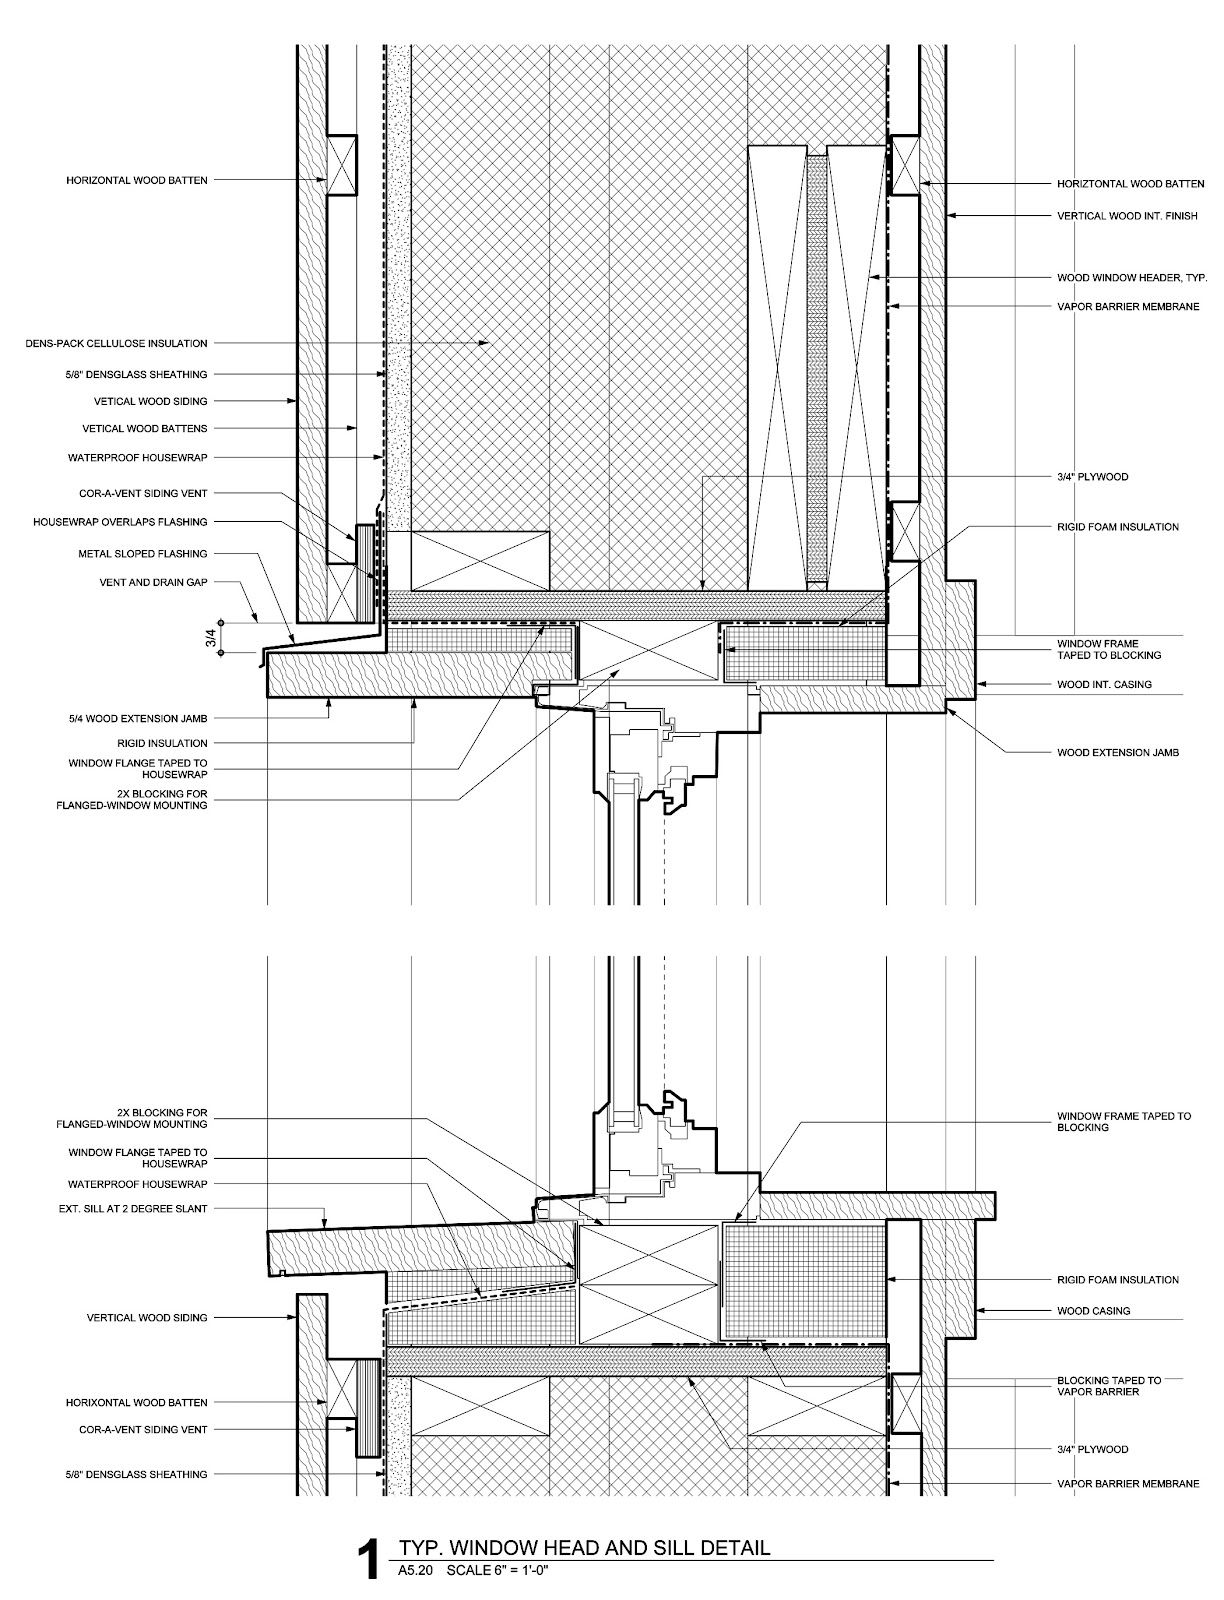 passivhaus window head and sill architectural plans models presentation pinterest. Black Bedroom Furniture Sets. Home Design Ideas